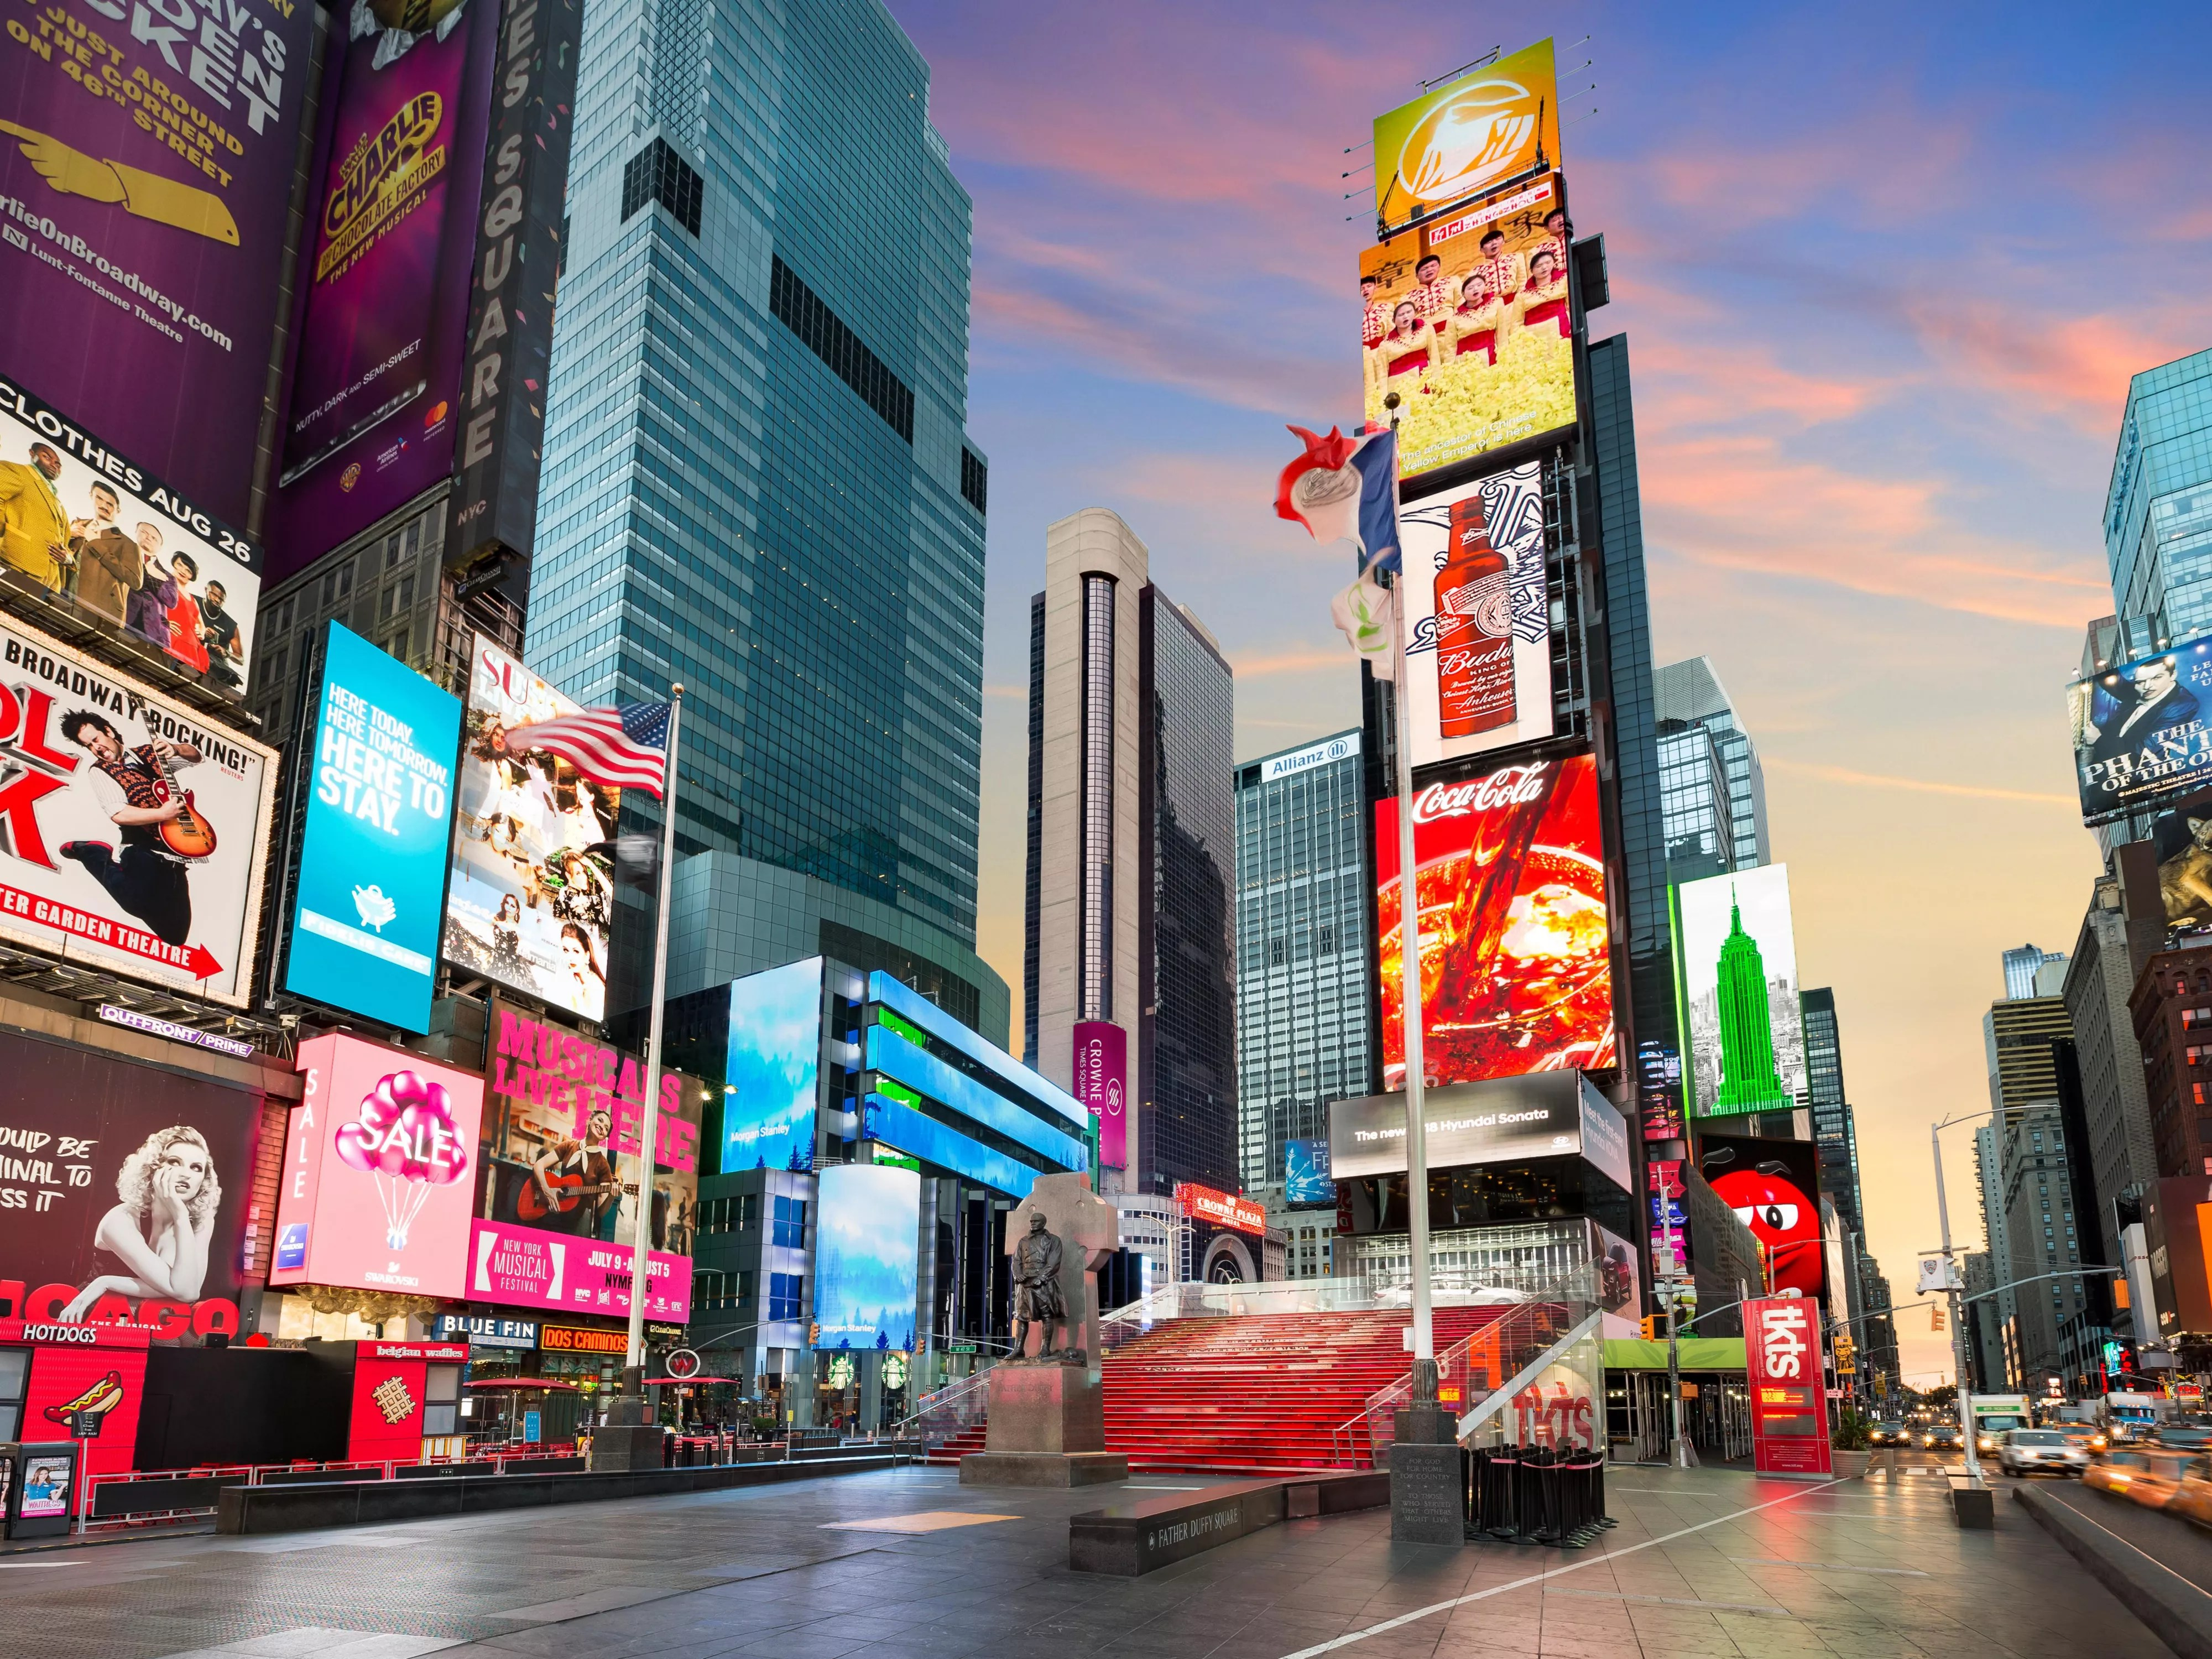 Albergo York Luxury Hotels In Times Square Broadway Crowne Plaza Times